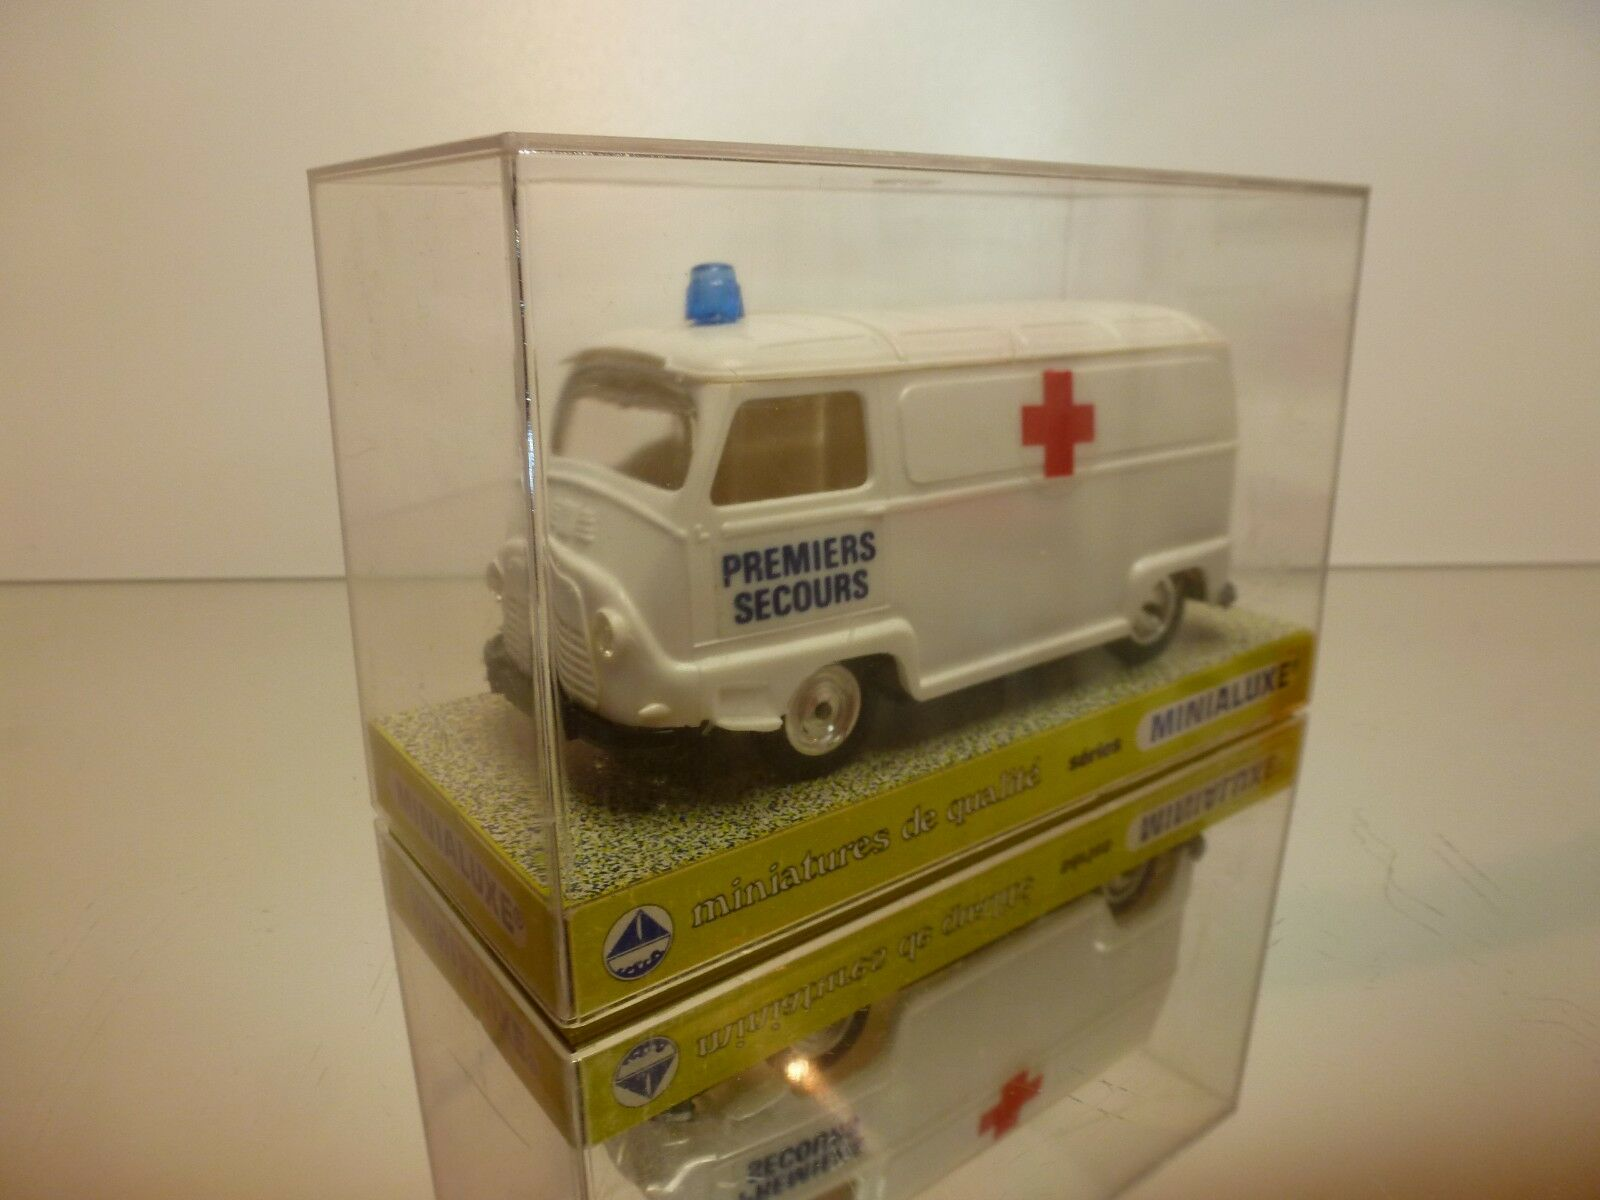 MINIALUXE RENAULT ESTAFETTE - AMBULANCE - WHITE  1 1 1 32 - VERY GOOD IN BOX feb677